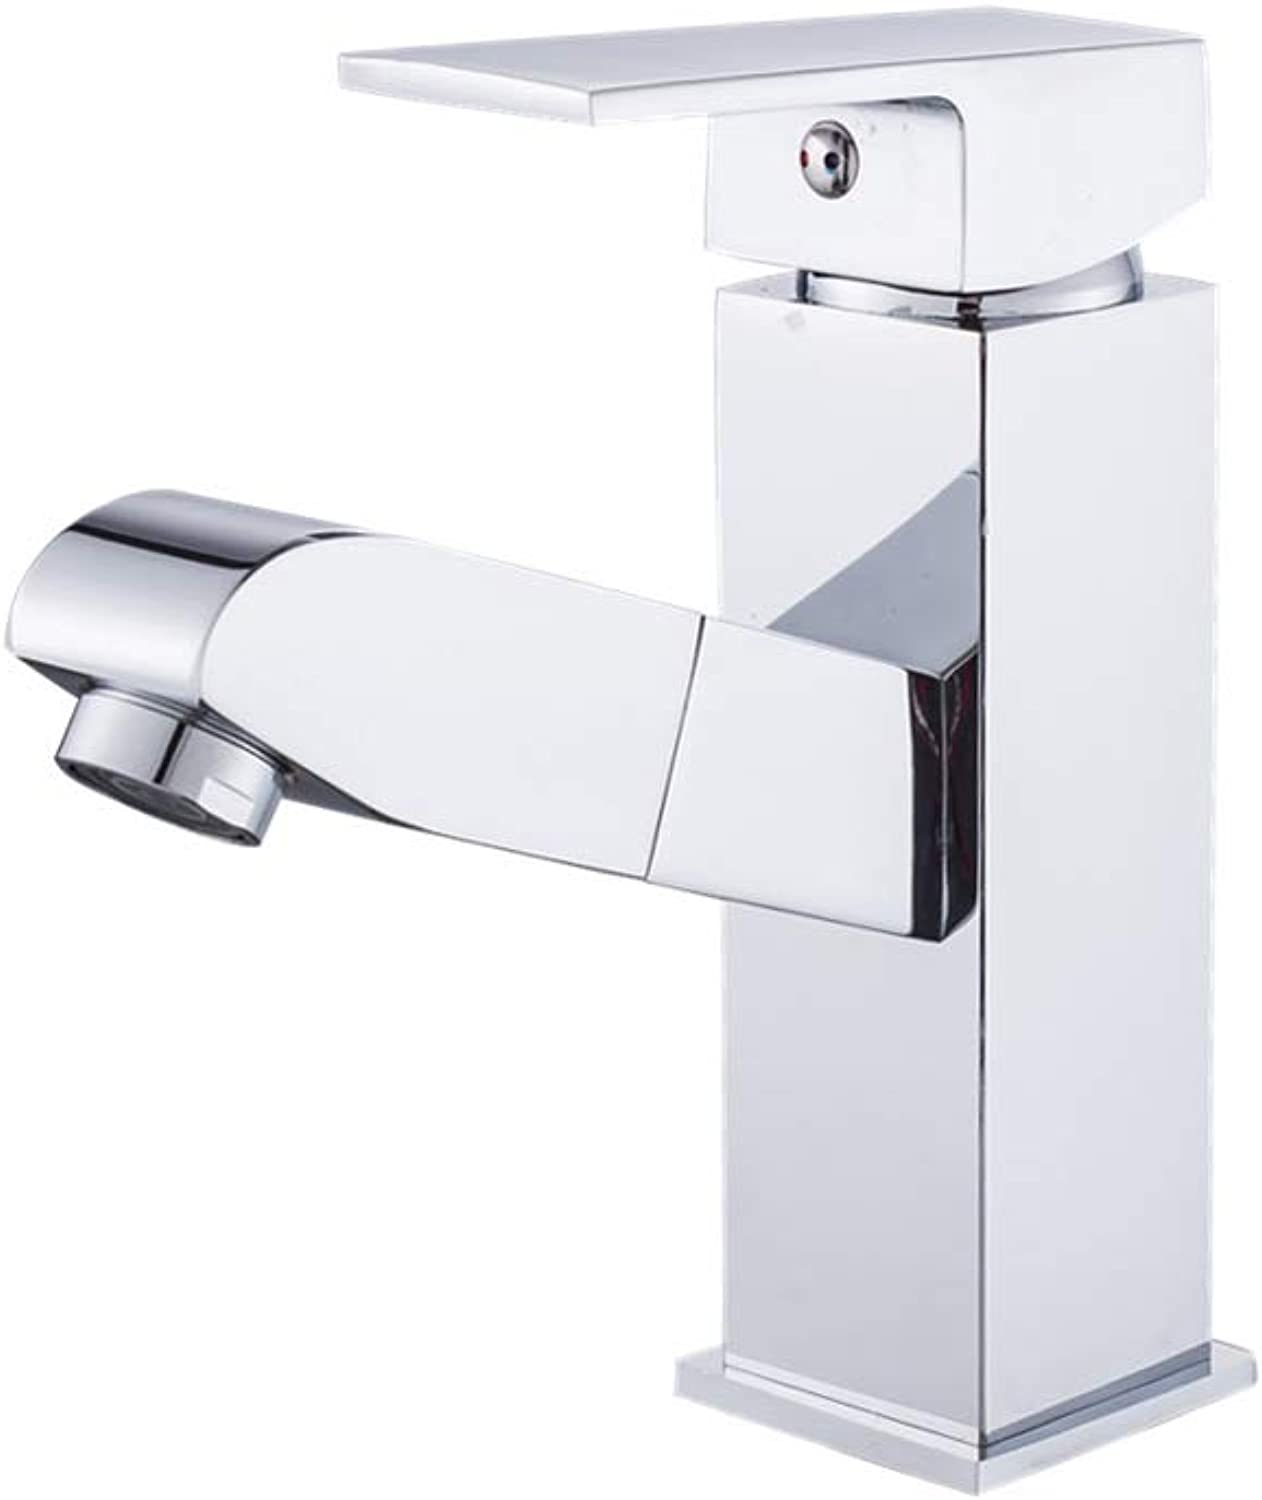 Bathroom Sink Basin Lever Mixer Tap Cold and Hot Water Faucet Copper Pull Faucet Single Hole Cold and Hot Face Basin Faucet Bathroom Cold and Hot Face Basin